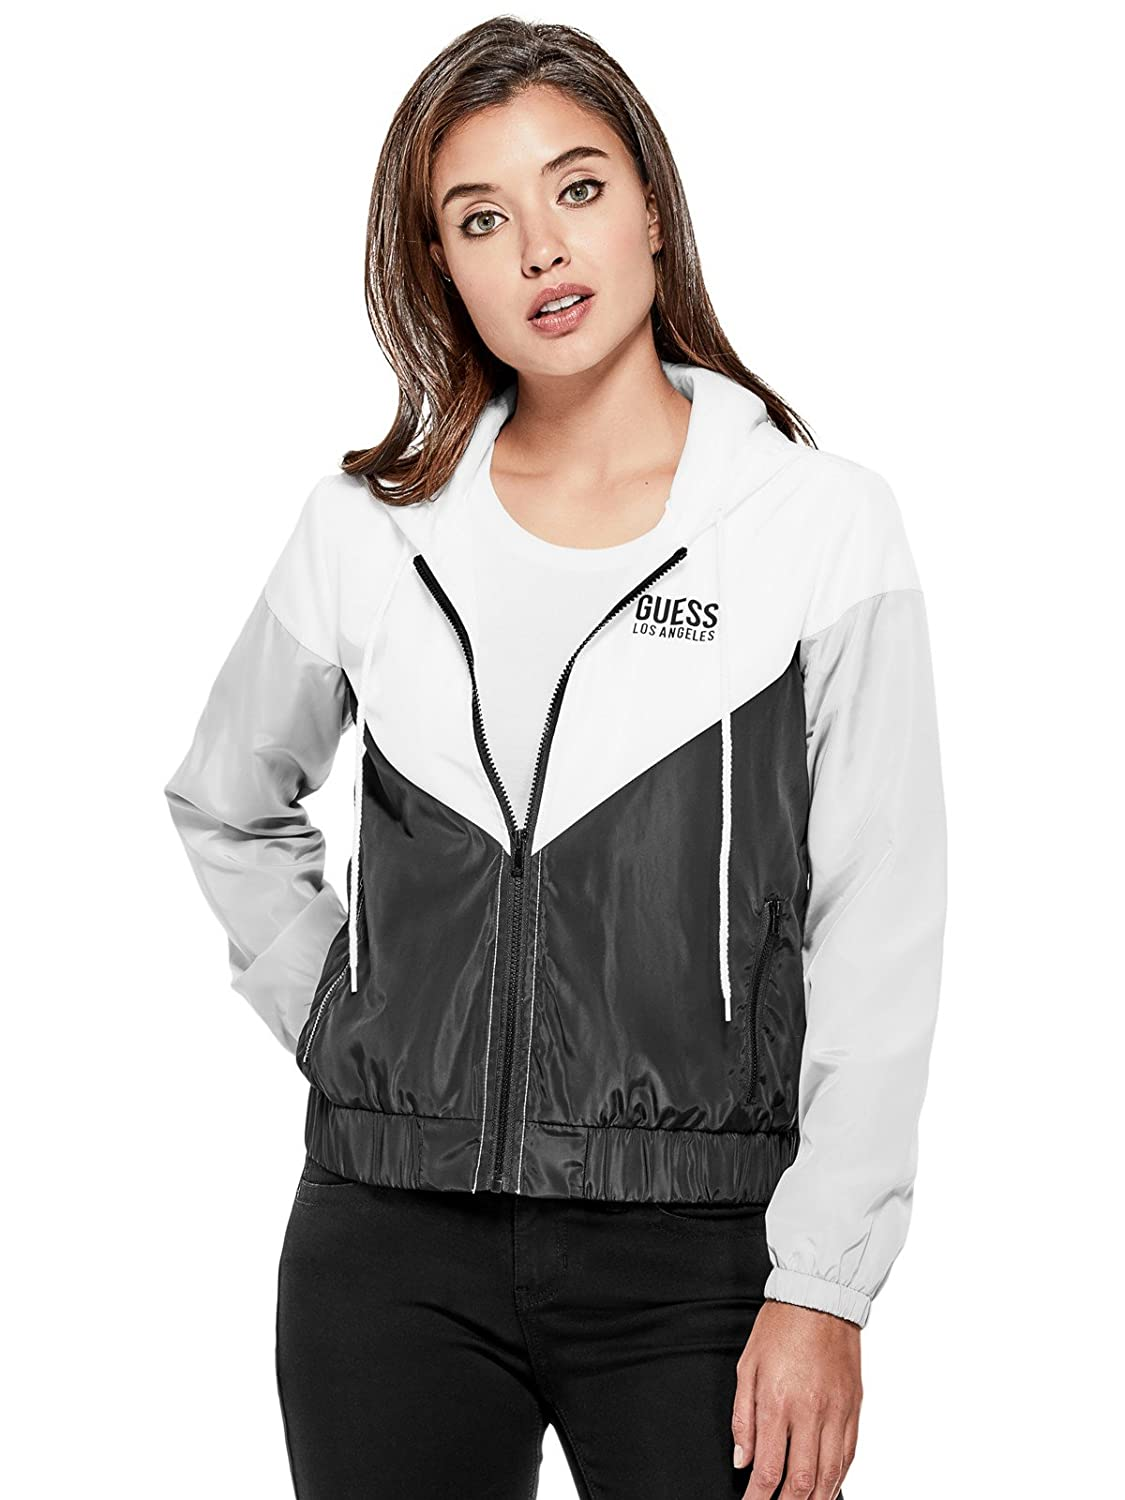 Guess Factory Women's RiRi Color-Block Windbreaker GuessFactory